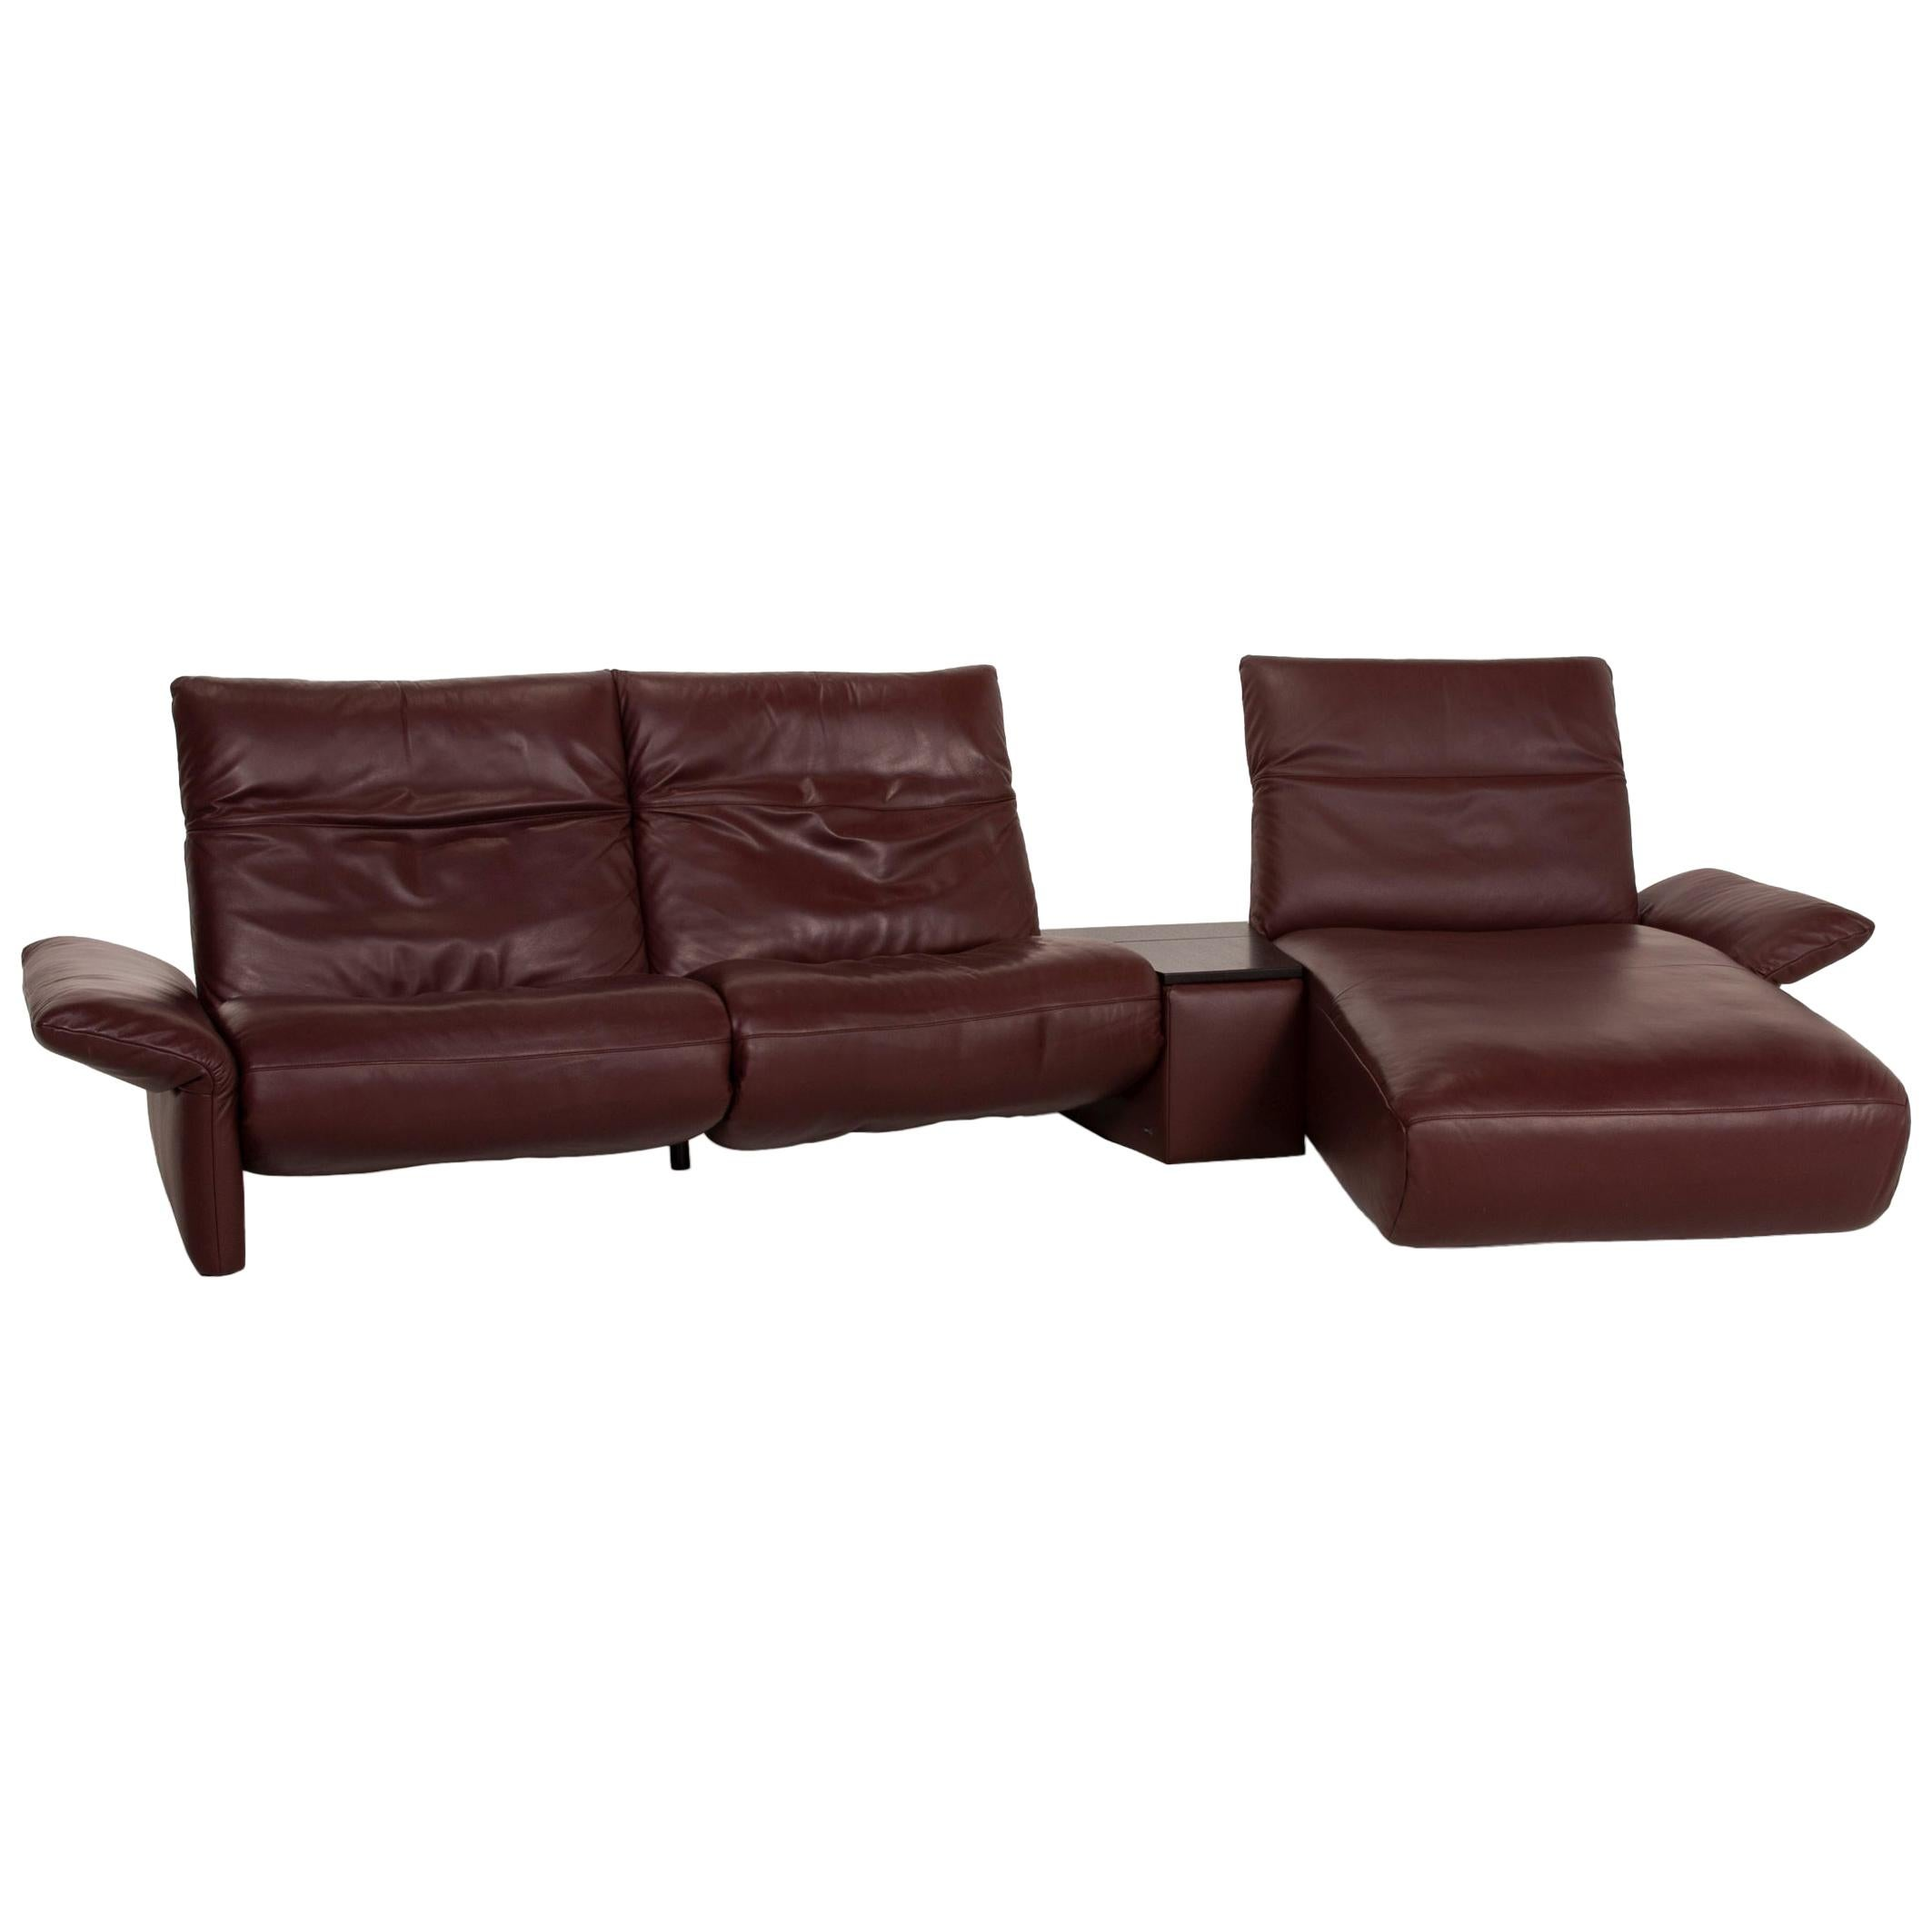 Koinor Elena Leather Sofa Brown Corner Sofa Red Dark Brown Function